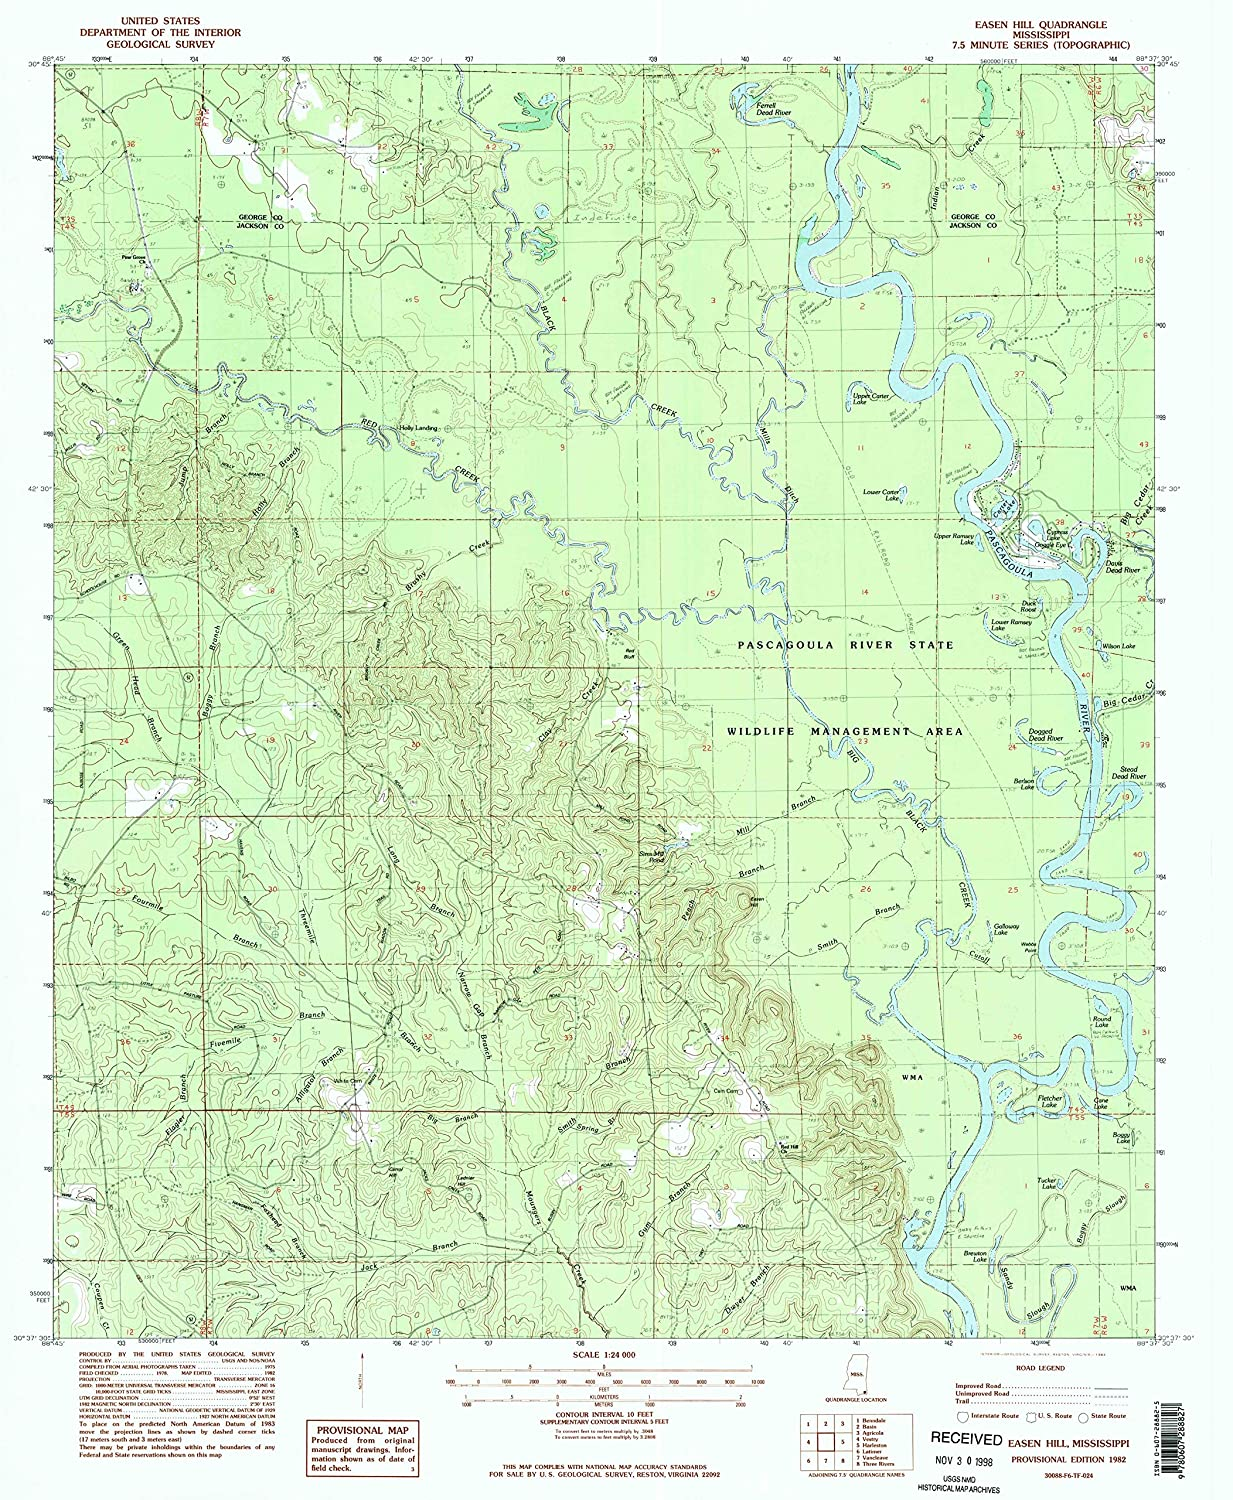 Map Print - Easen Hill, Mississippi (1982), 1:24000 Scale - 24